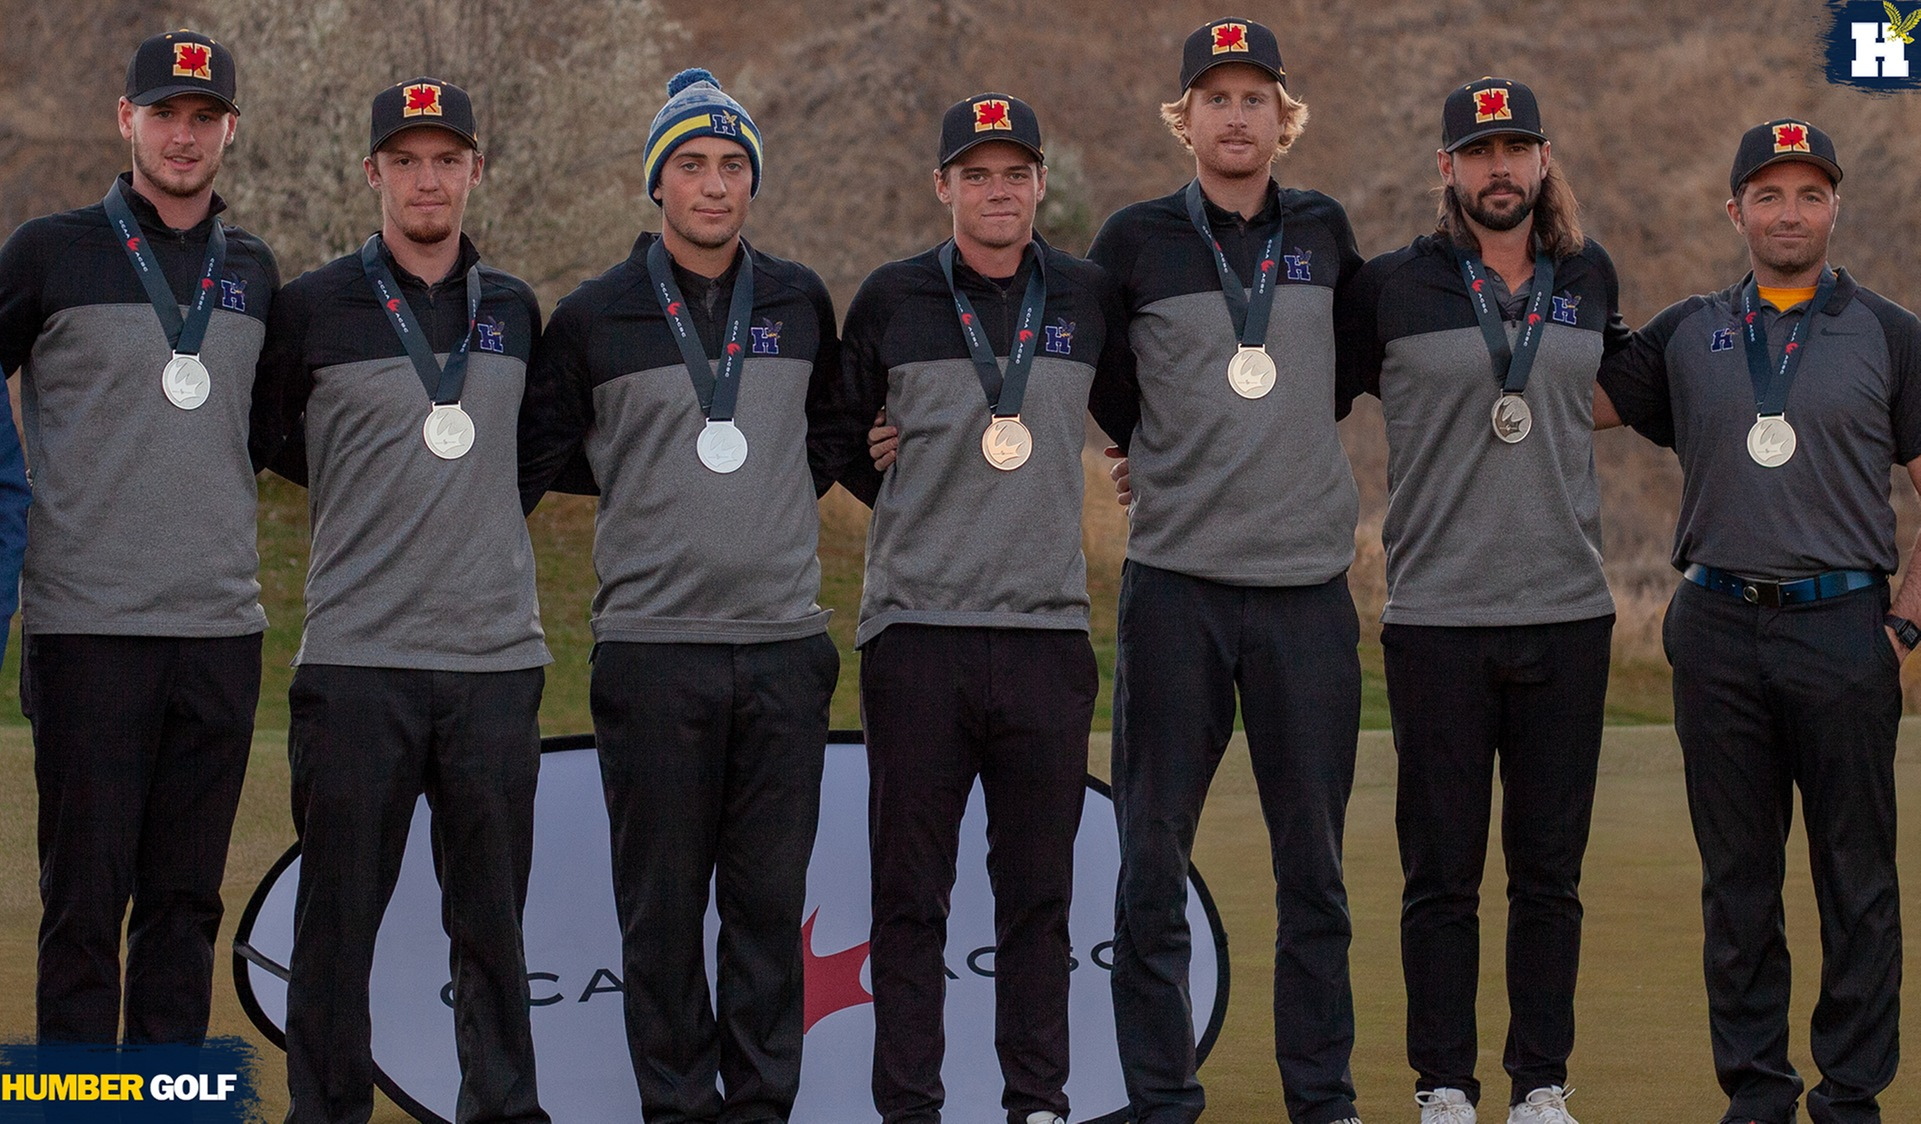 TEAM AND INDIVIDUAL (CONNER WATT) SILVER FOR HAWKS AT 2018 GOLF NATIONALS